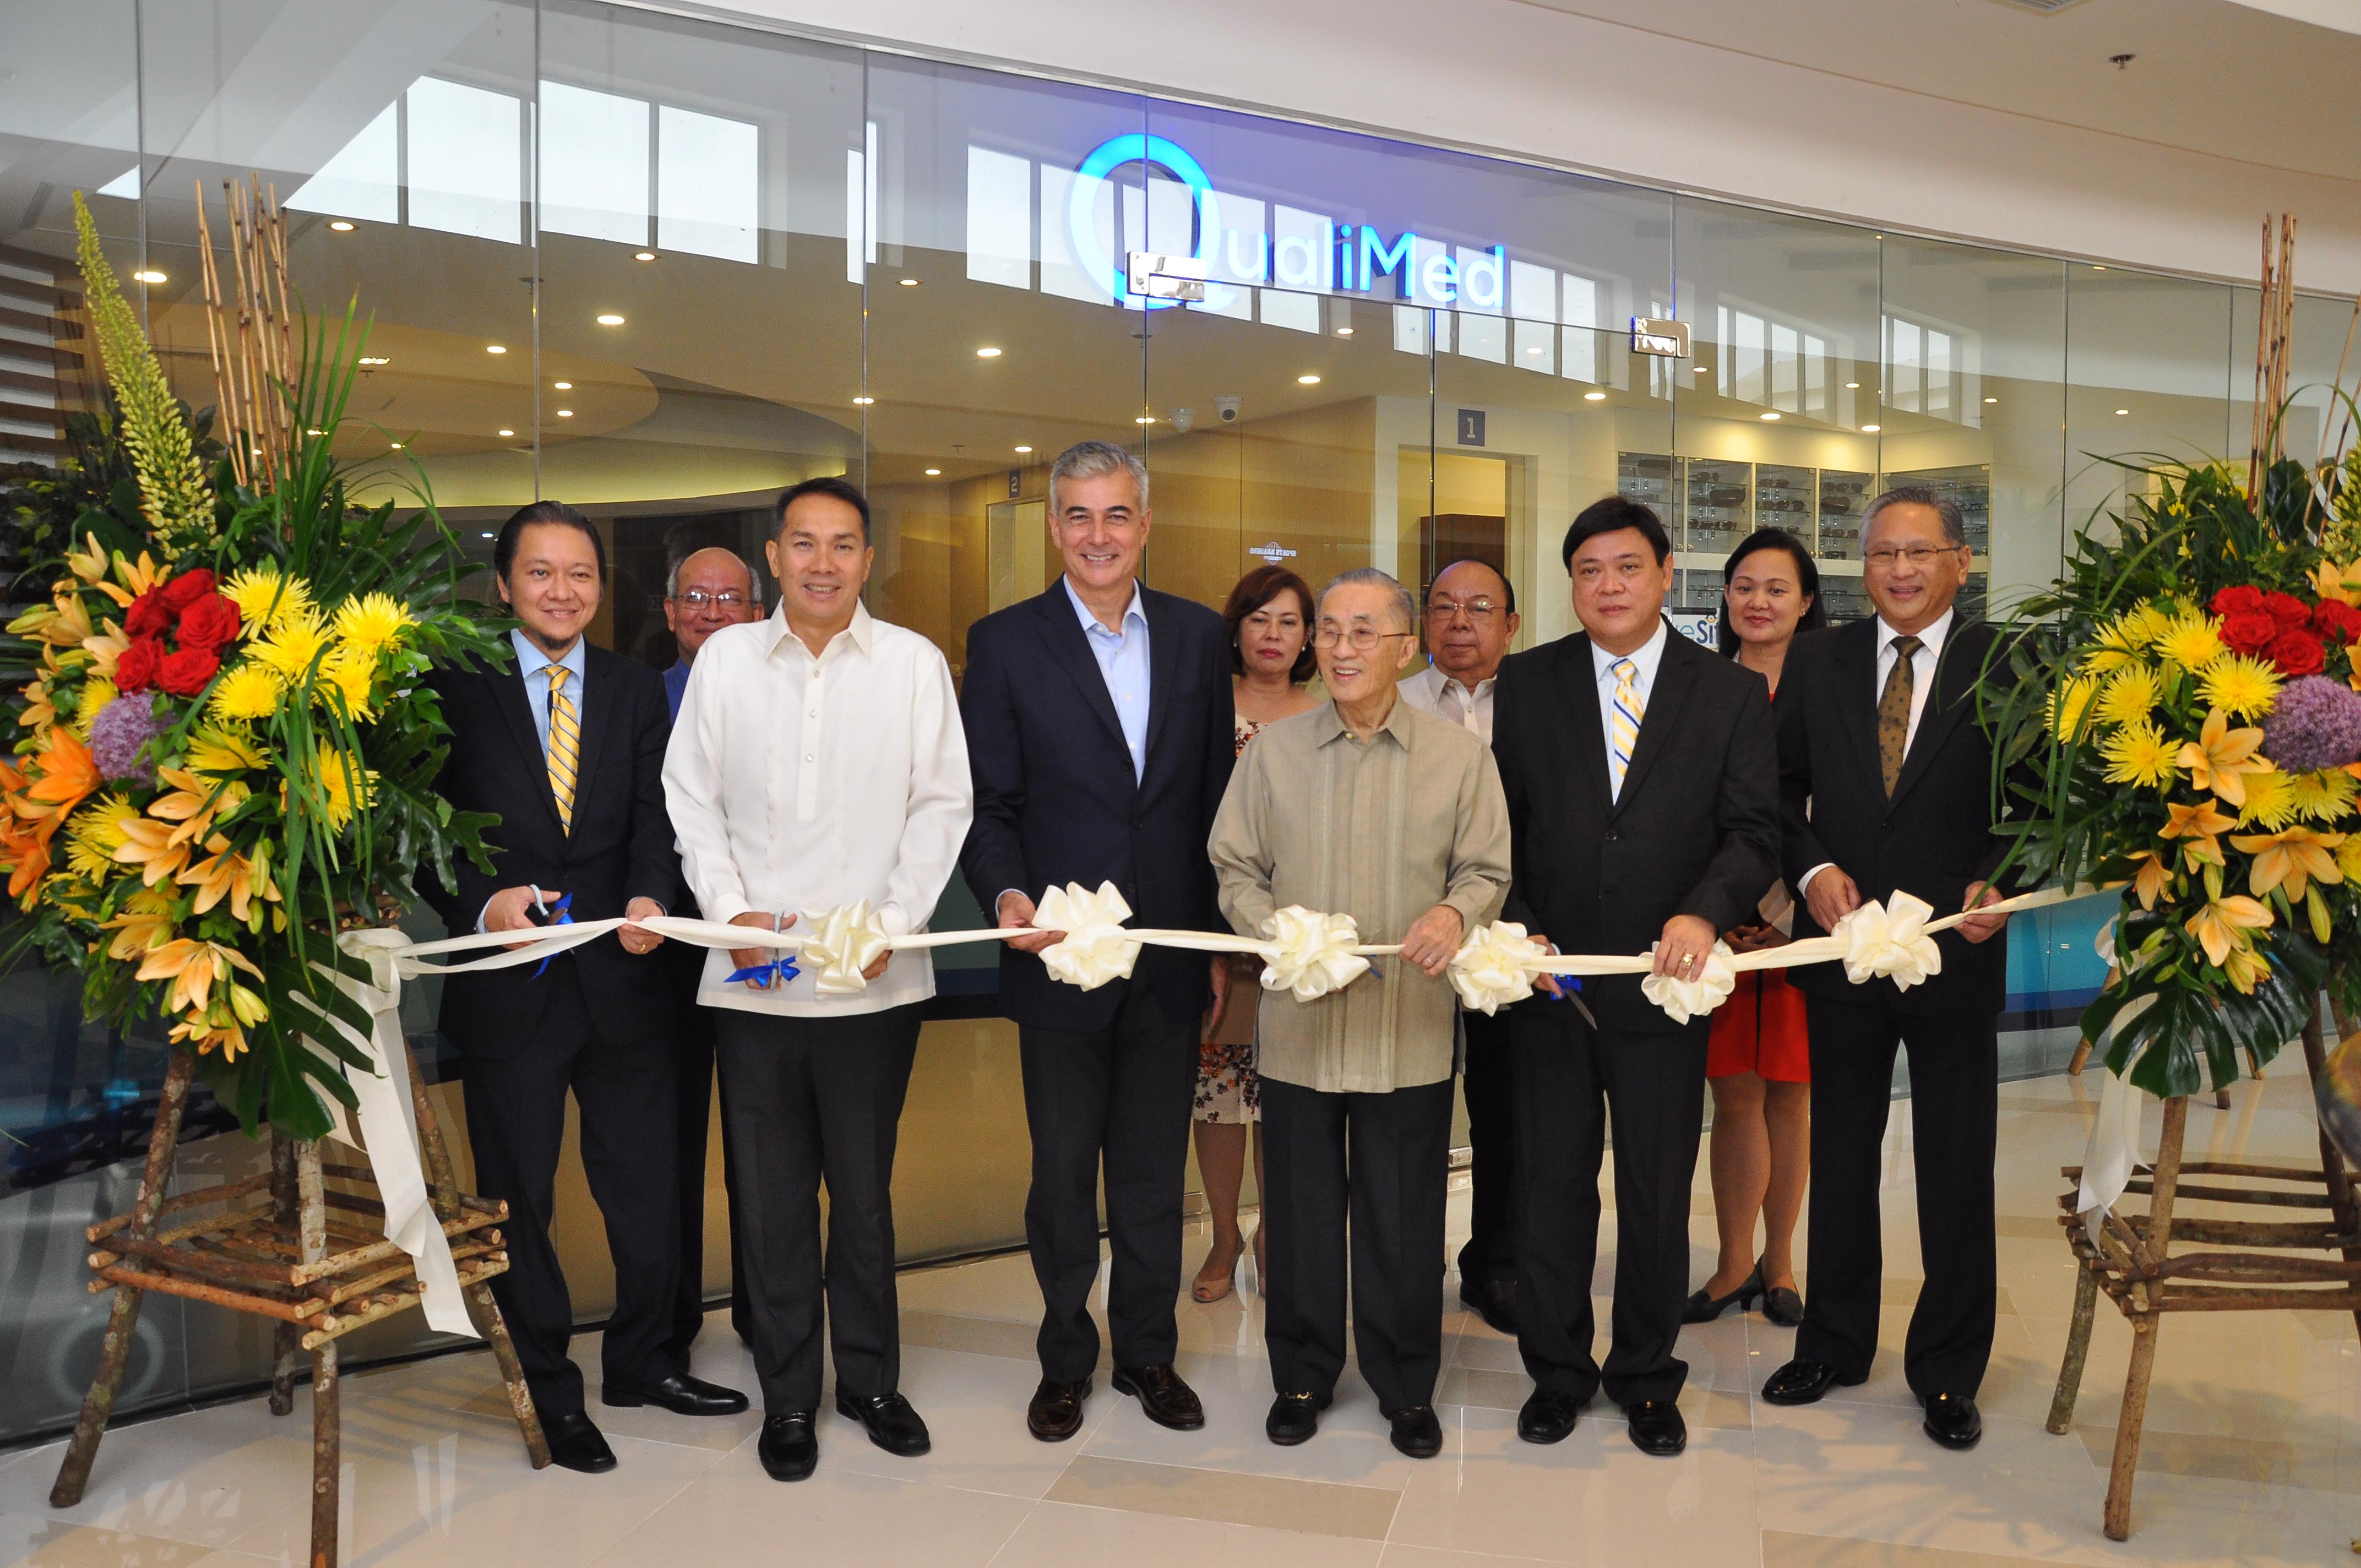 QualiMed Opens First Mall-Based Surgery Center with More Partners